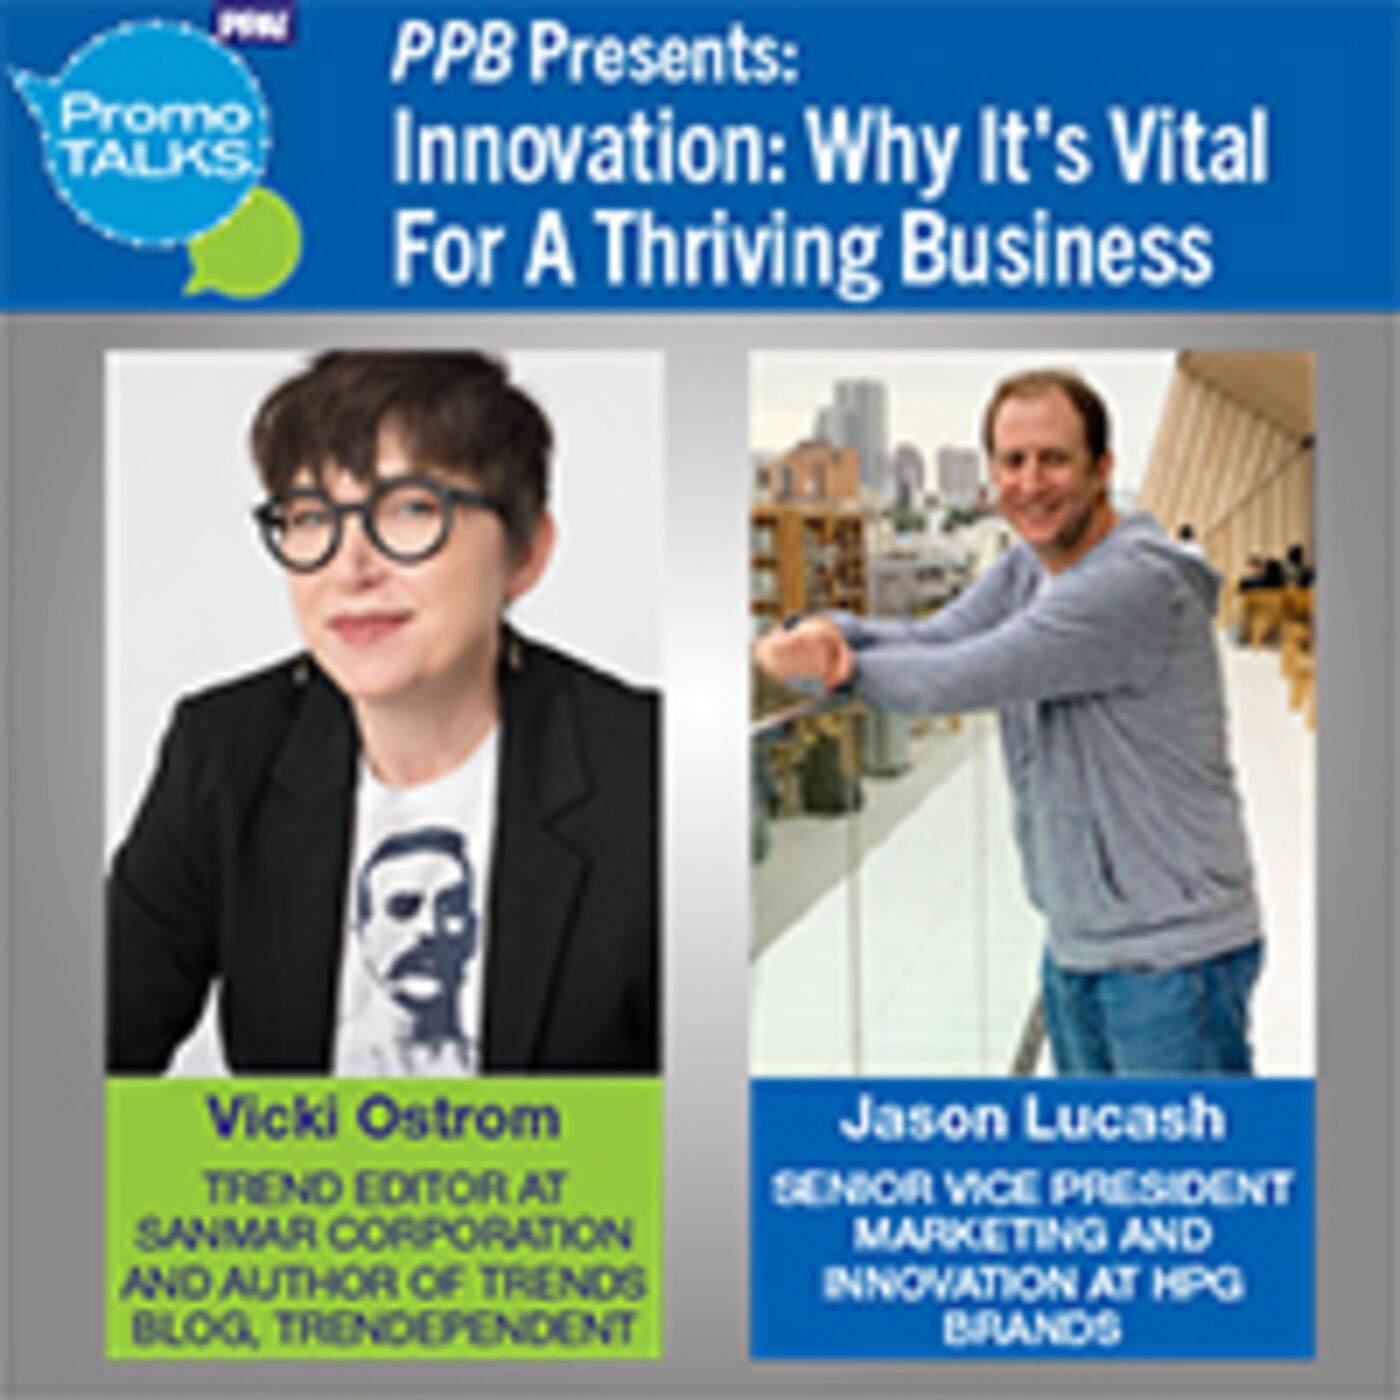 PPB Presents Innovation: Why It's Vital For A Thriving Business